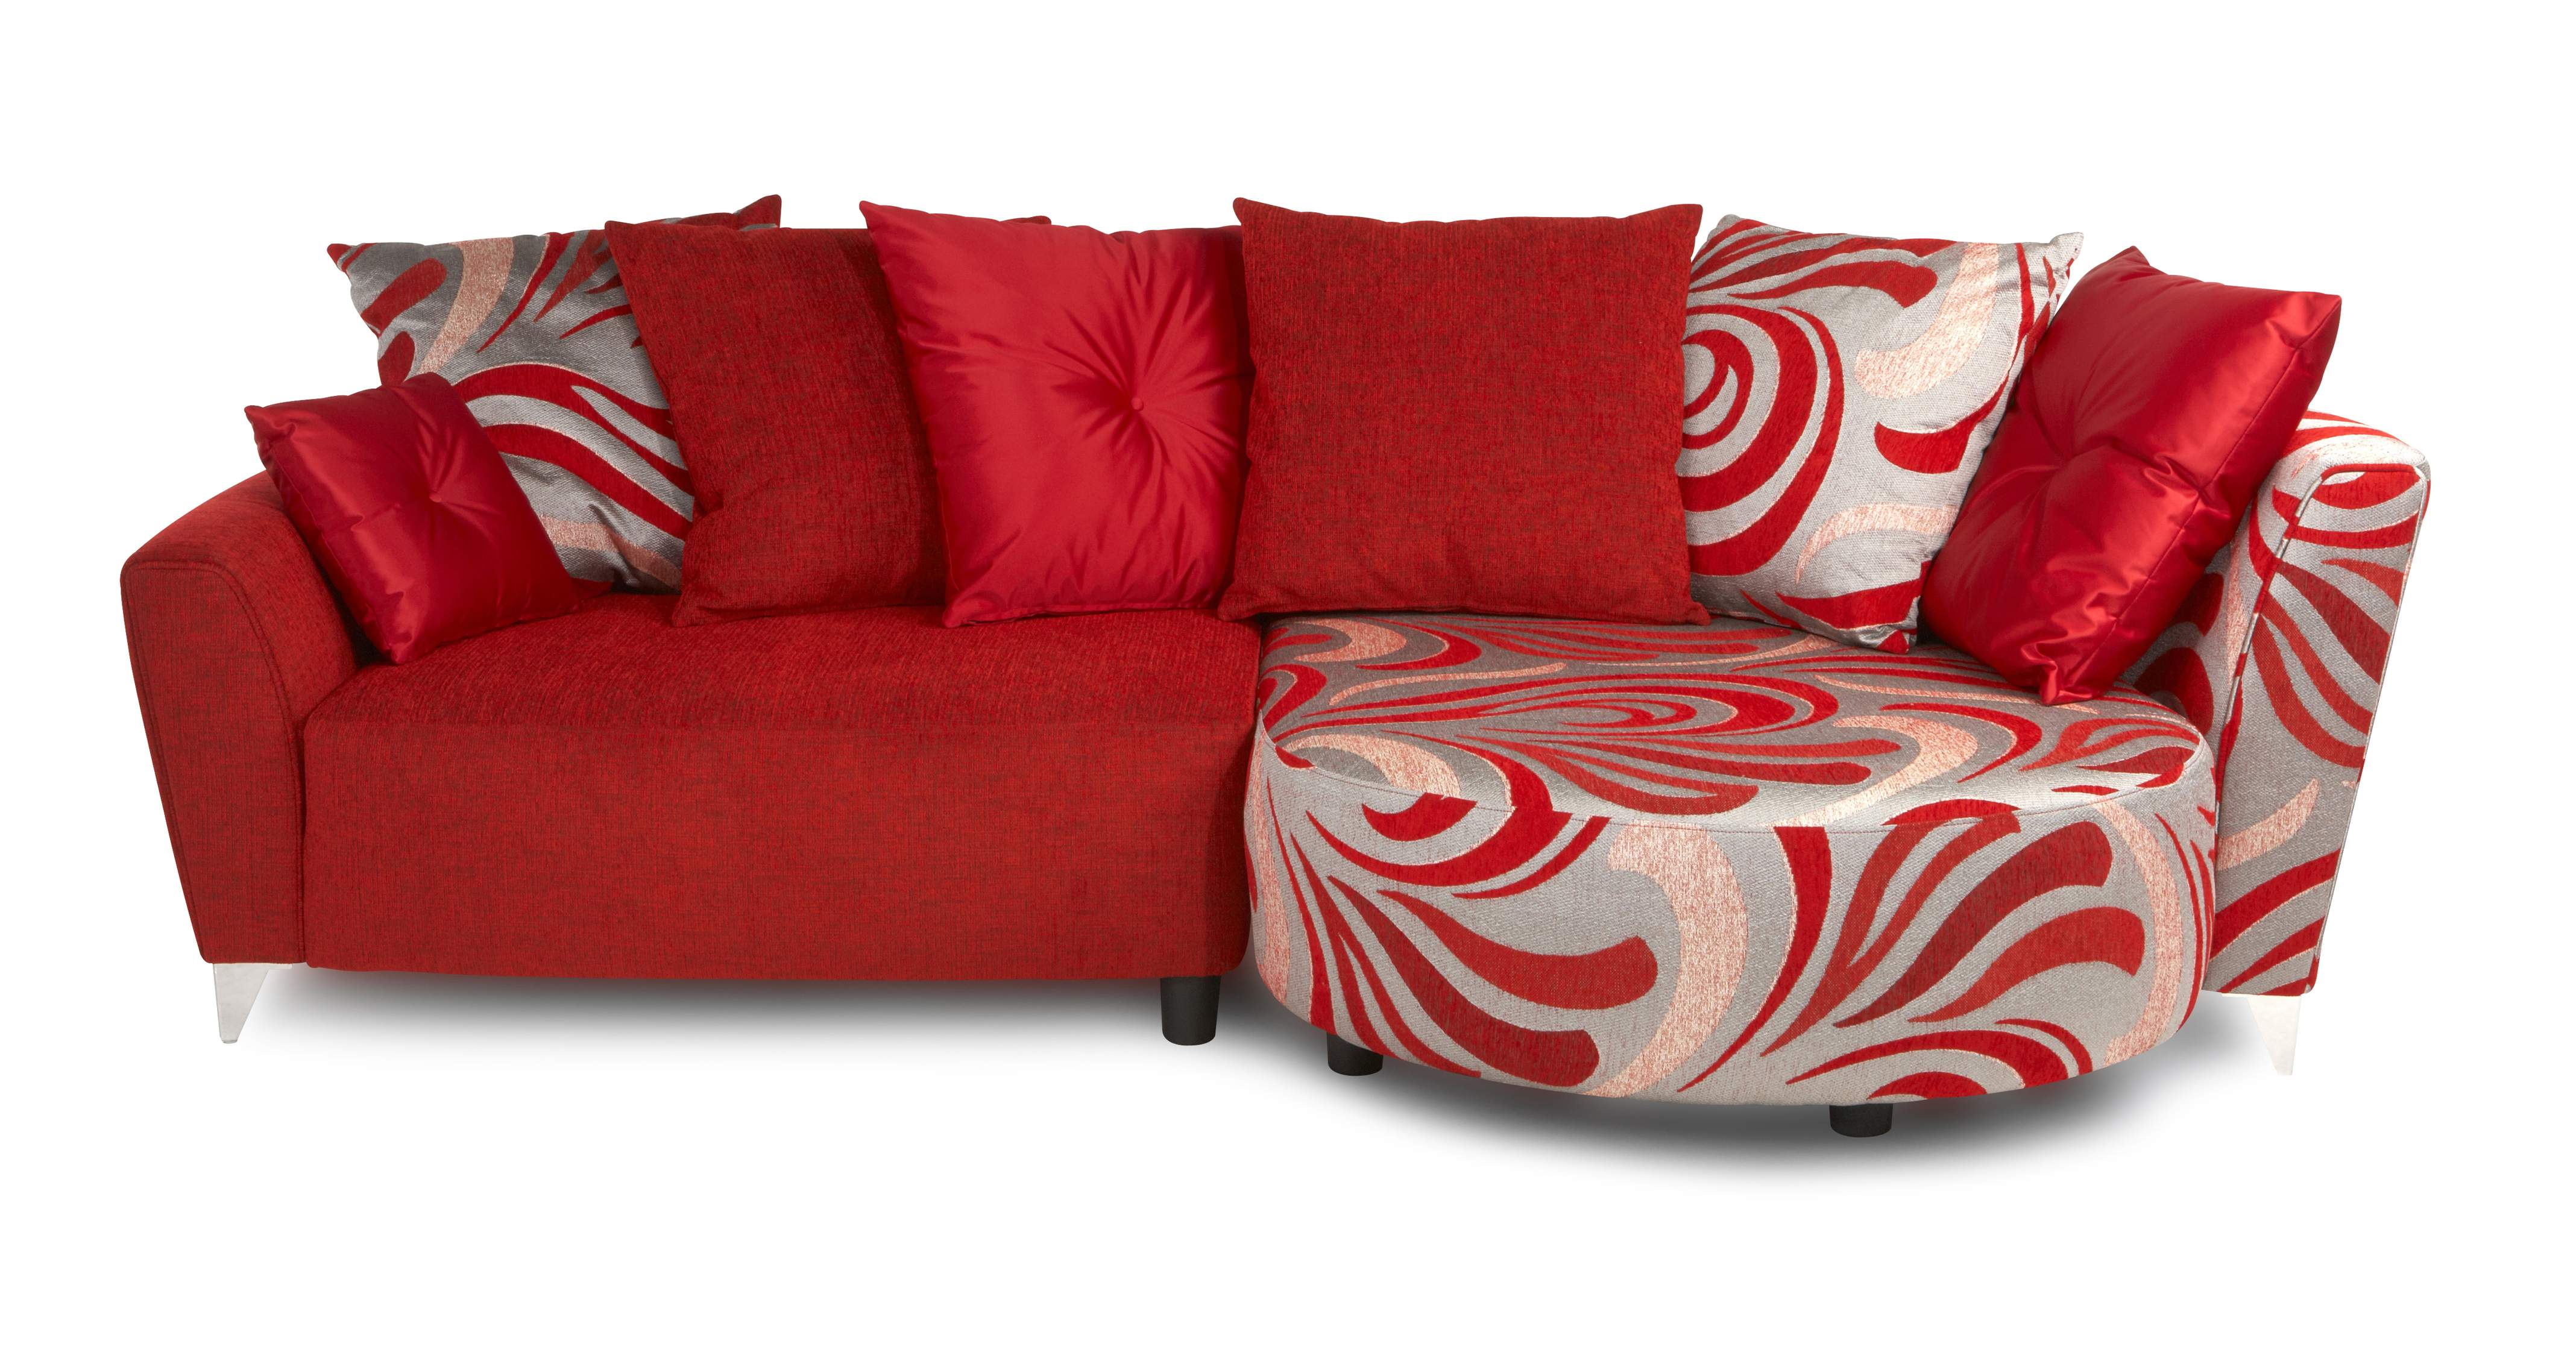 DFS Daze Right Hand Facing Red Chaise Sofa EBay